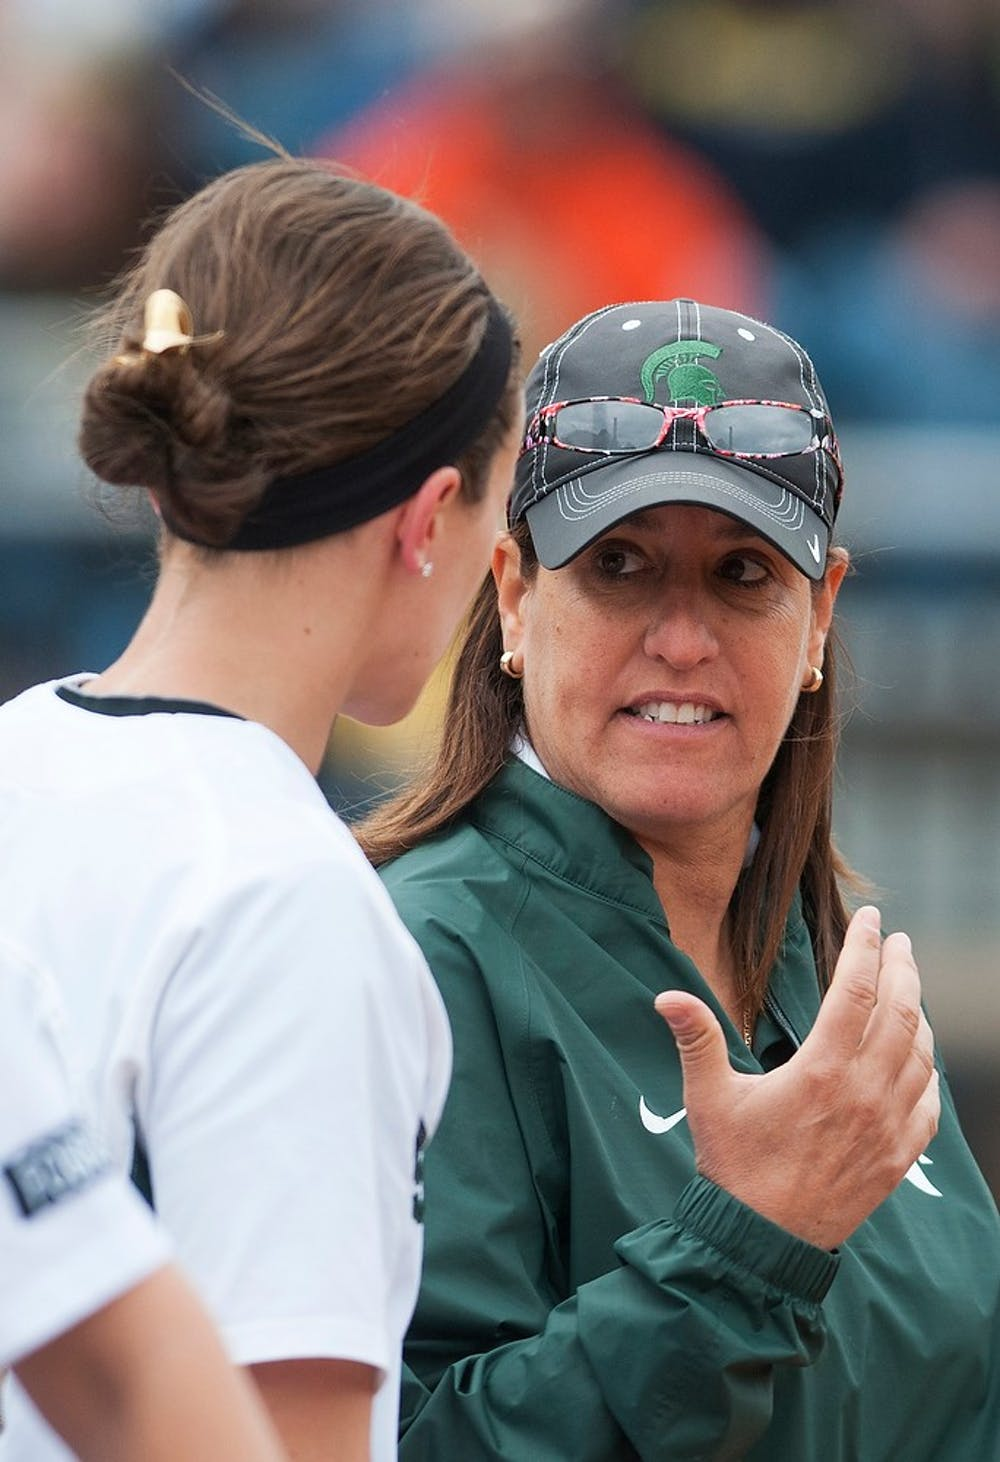 <p>Head coach Jacquie Joseph talks with junior catcher/outfielder Ellie Stoffer near the dugout during the game against Michigan on April 13, 2014, at Secchia Stadium at Old College Field. The Spartans were shut out by the Wolverines, 14-0. Danyelle Morrow/The State News</p>